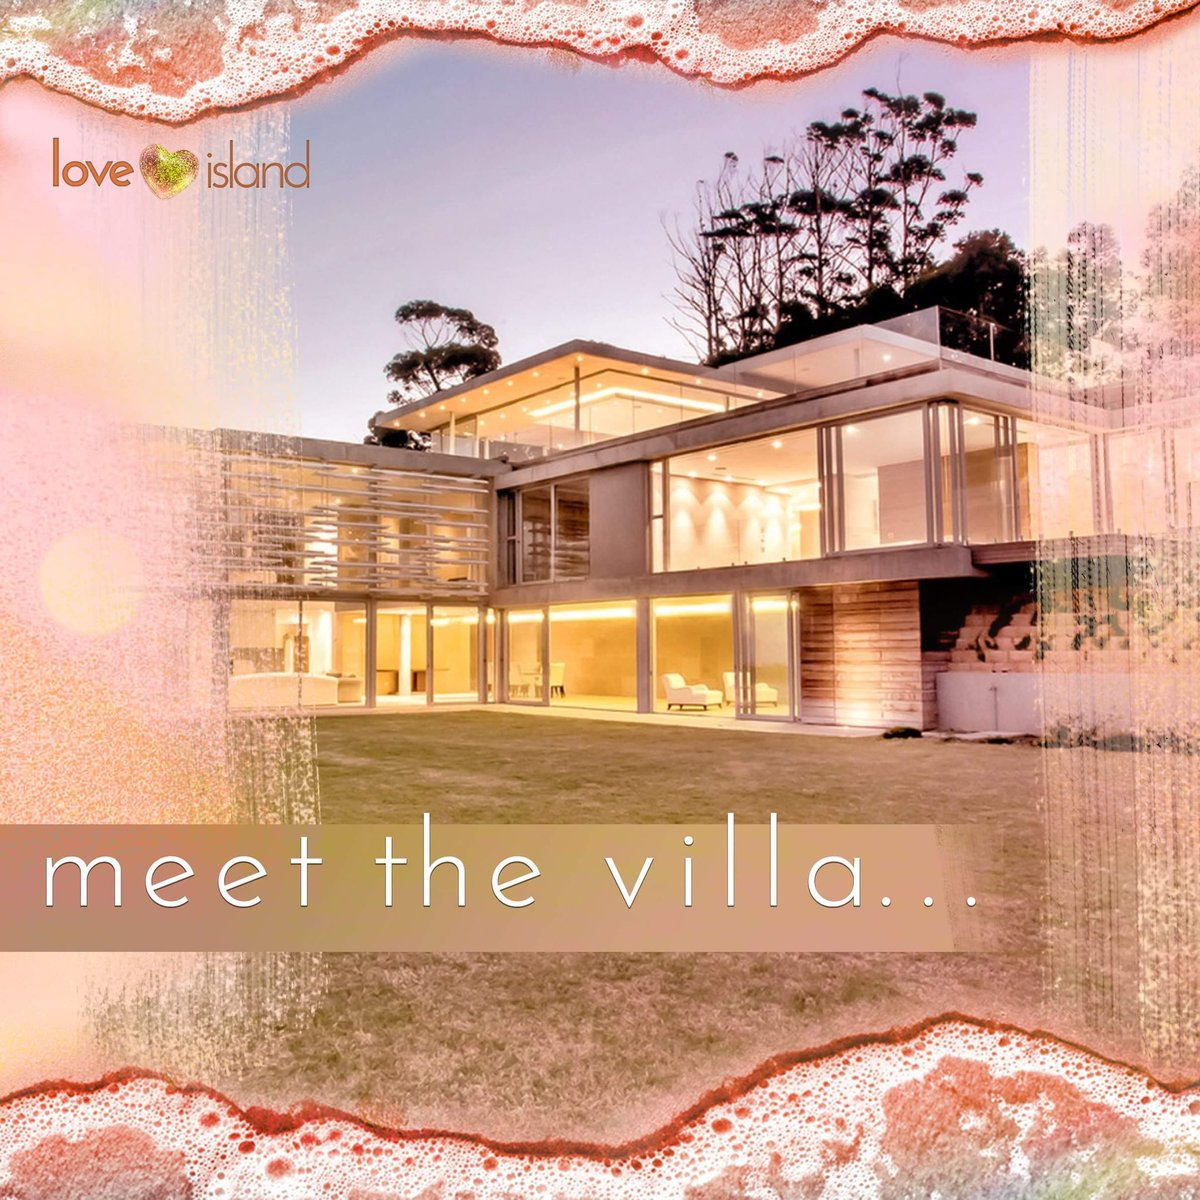 Here's your FIRST exclusive look at the Love Island Villa and how gorgeous does it look   Just 5 WEEKS TO GO until our new HOT singletons move in, swapping the British winter for the scorching South African Summer  #loveisland #loveislanduk #loveislandnews<br>http://pic.twitter.com/NerSAcrc42